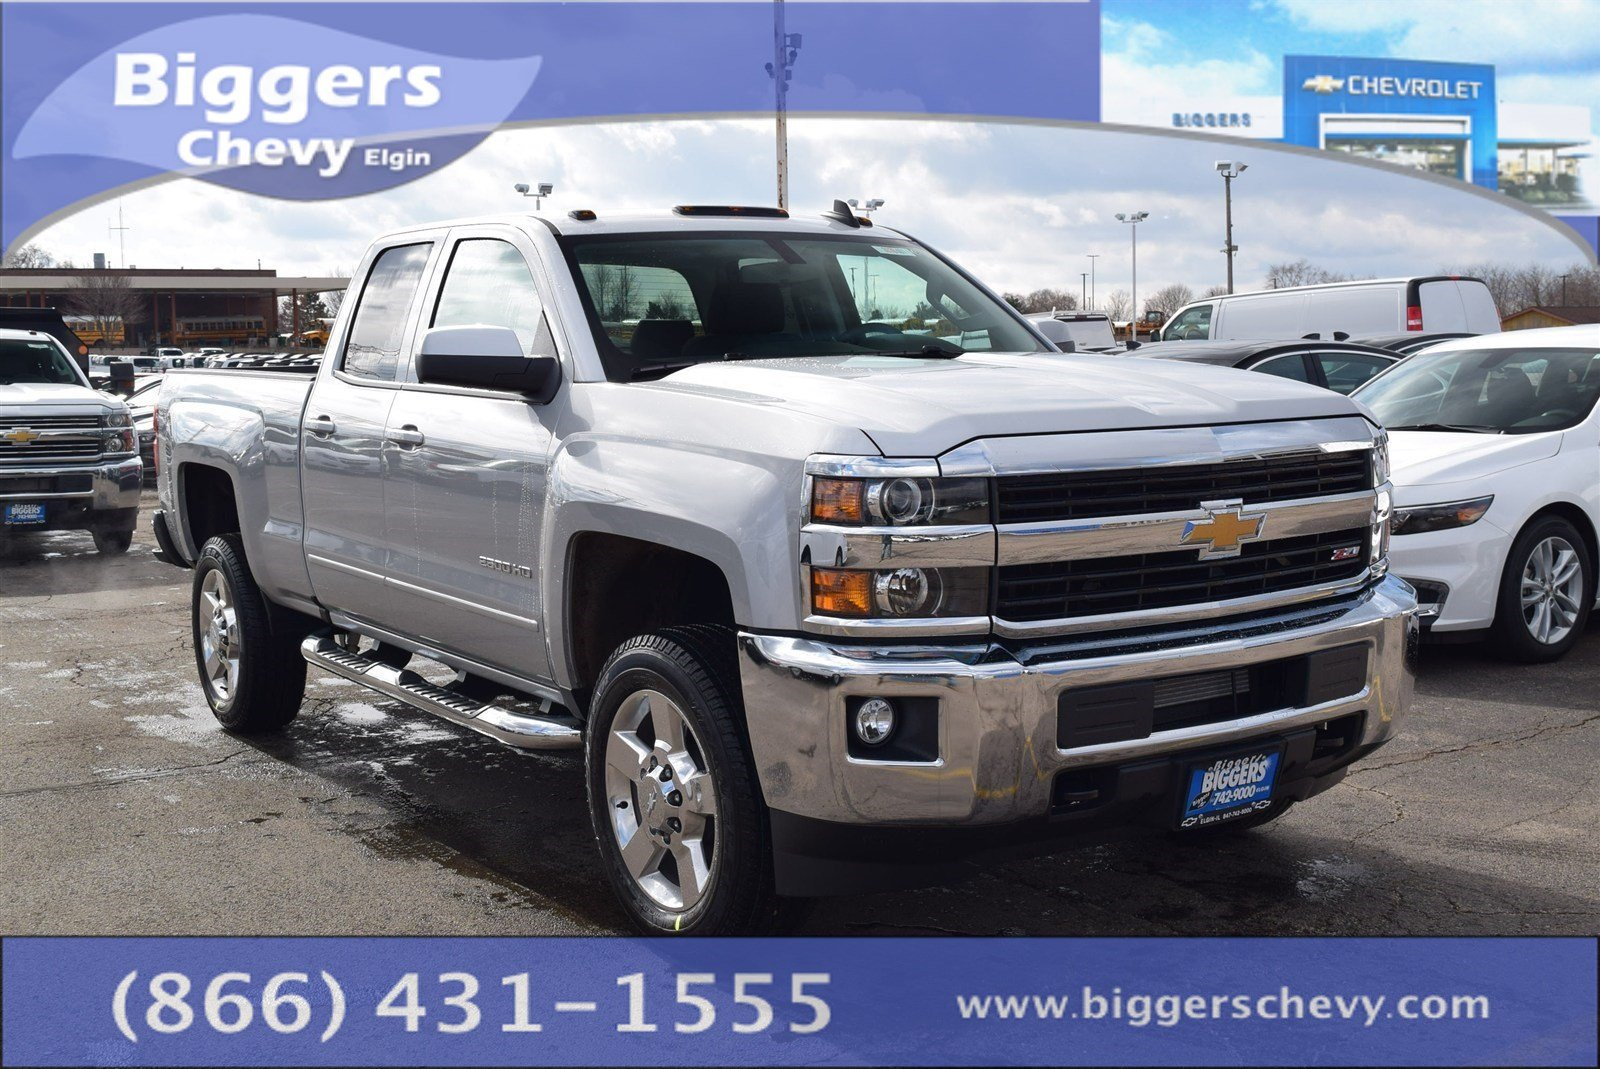 new 2017 chevrolet silverado 2500hd lt extended cab near schaumburg 3170401 biggers chevrolet. Black Bedroom Furniture Sets. Home Design Ideas